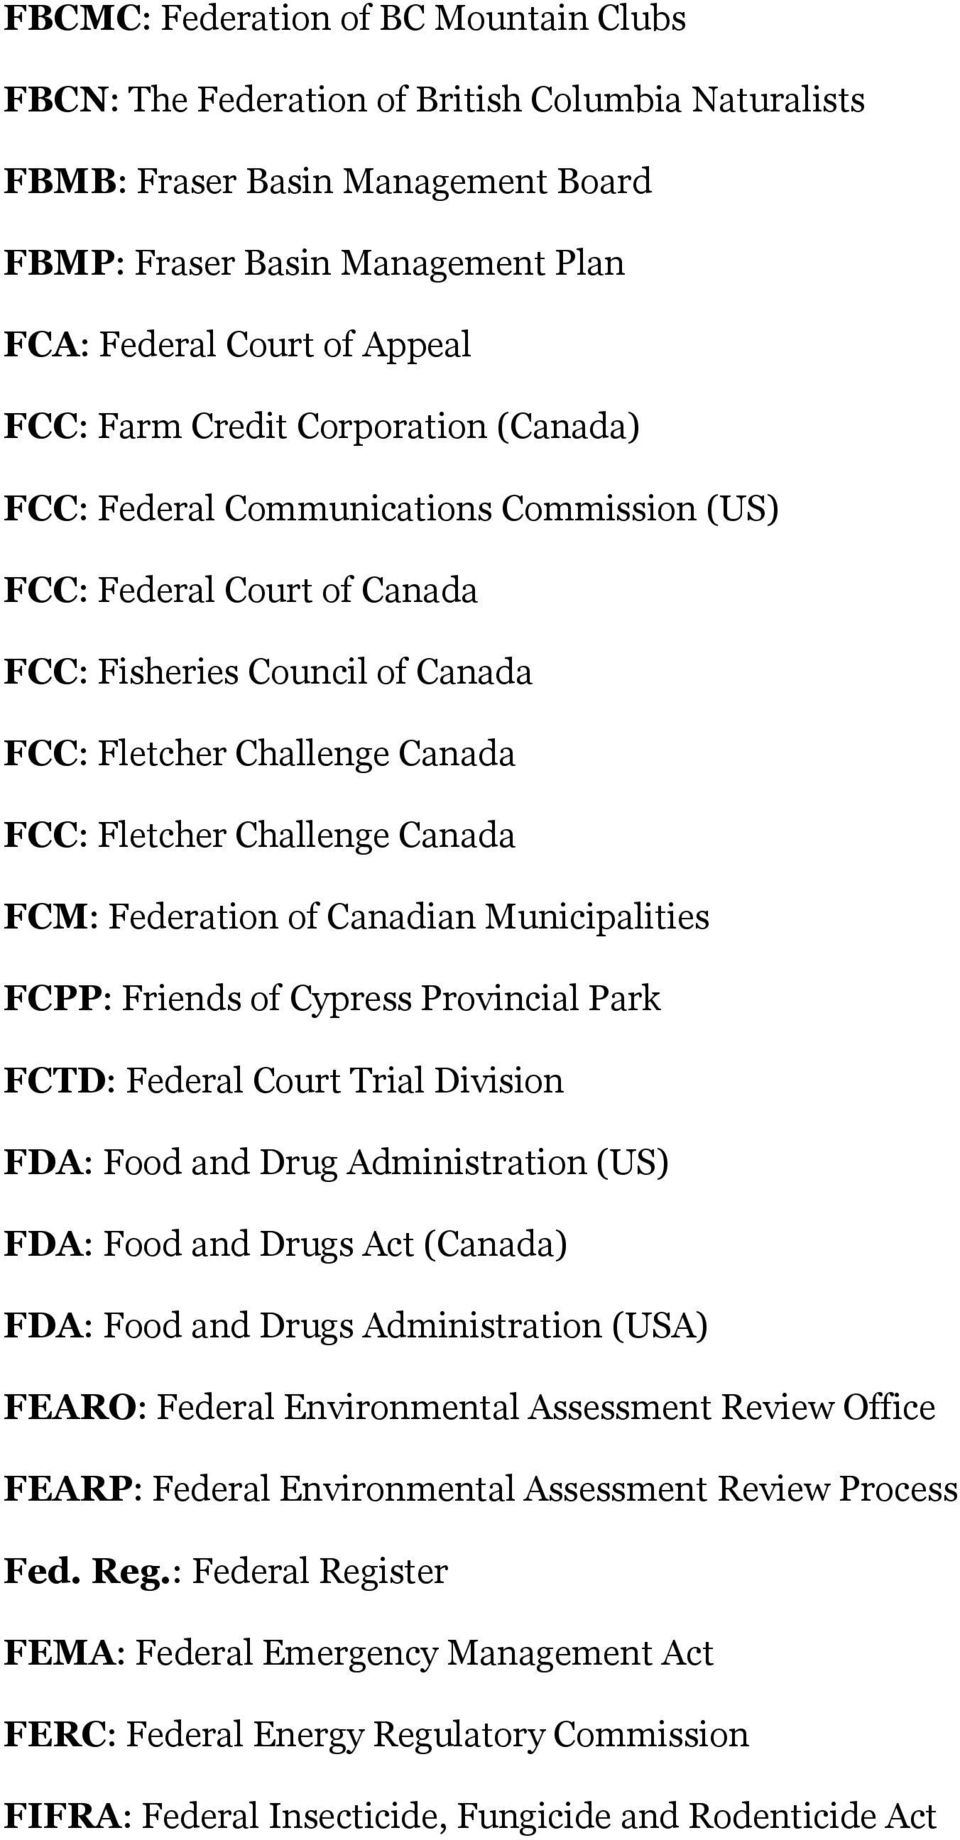 Canada FCM: Federation of Canadian Municipalities FCPP: Friends of Cypress Provincial Park FCTD: Federal Court Trial Division FDA: Food and Drug Administration (US) FDA: Food and Drugs Act (Canada)